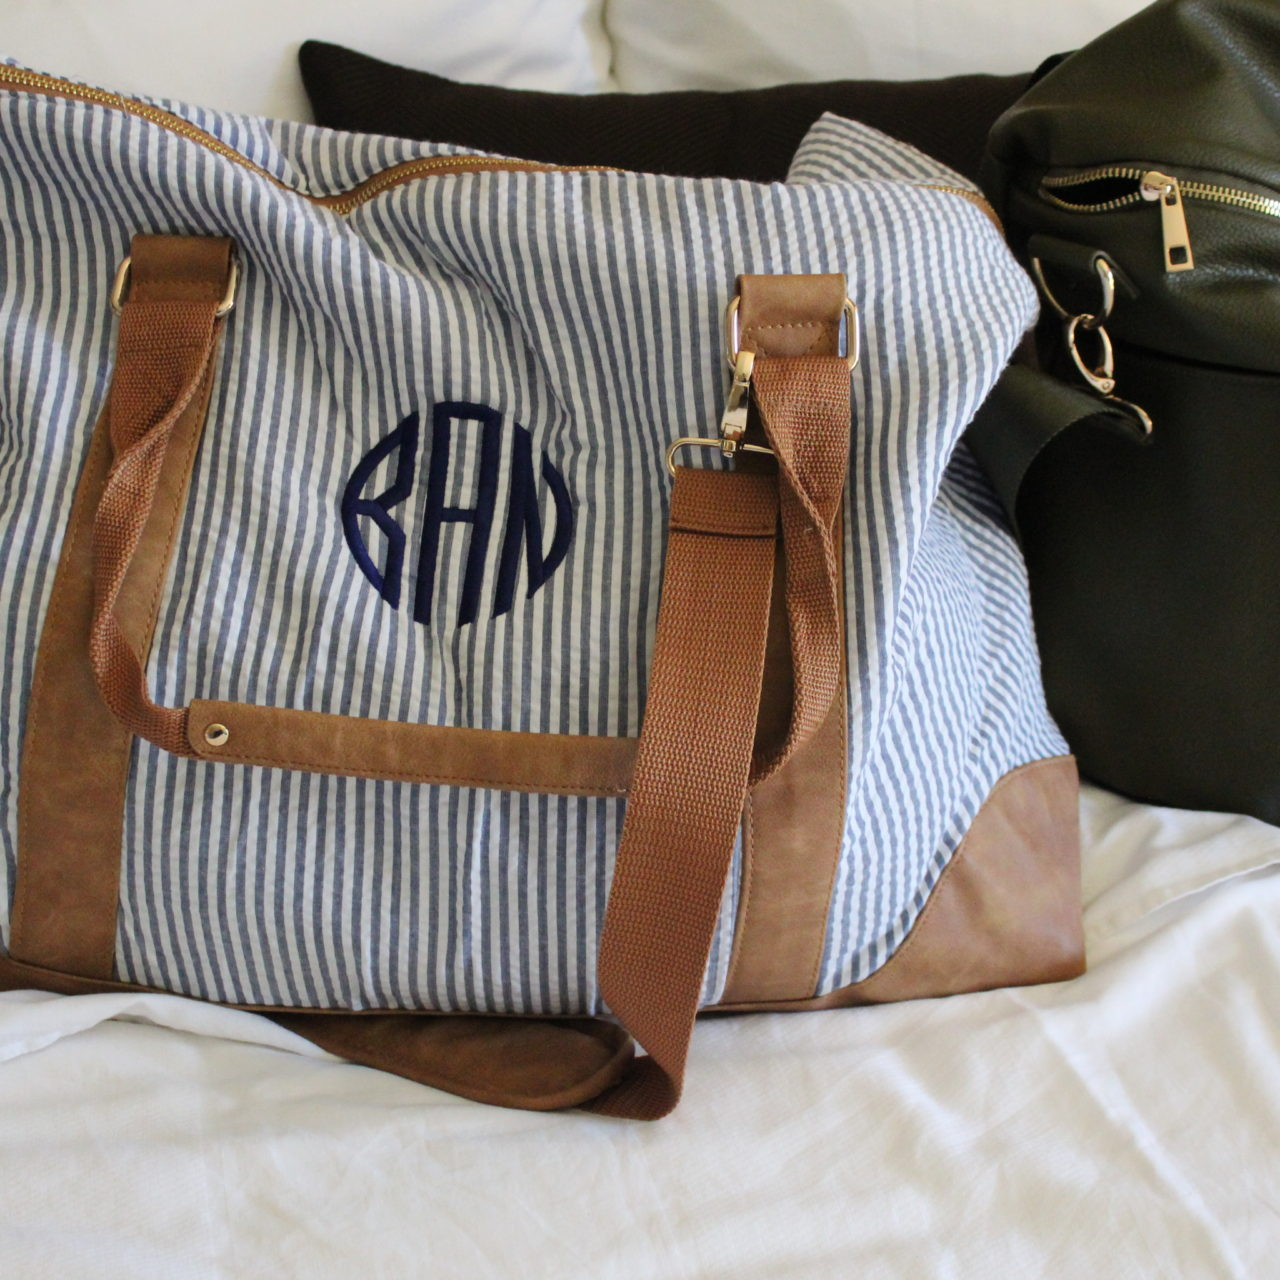 Hospital bag must-haves- The 3rd time around!